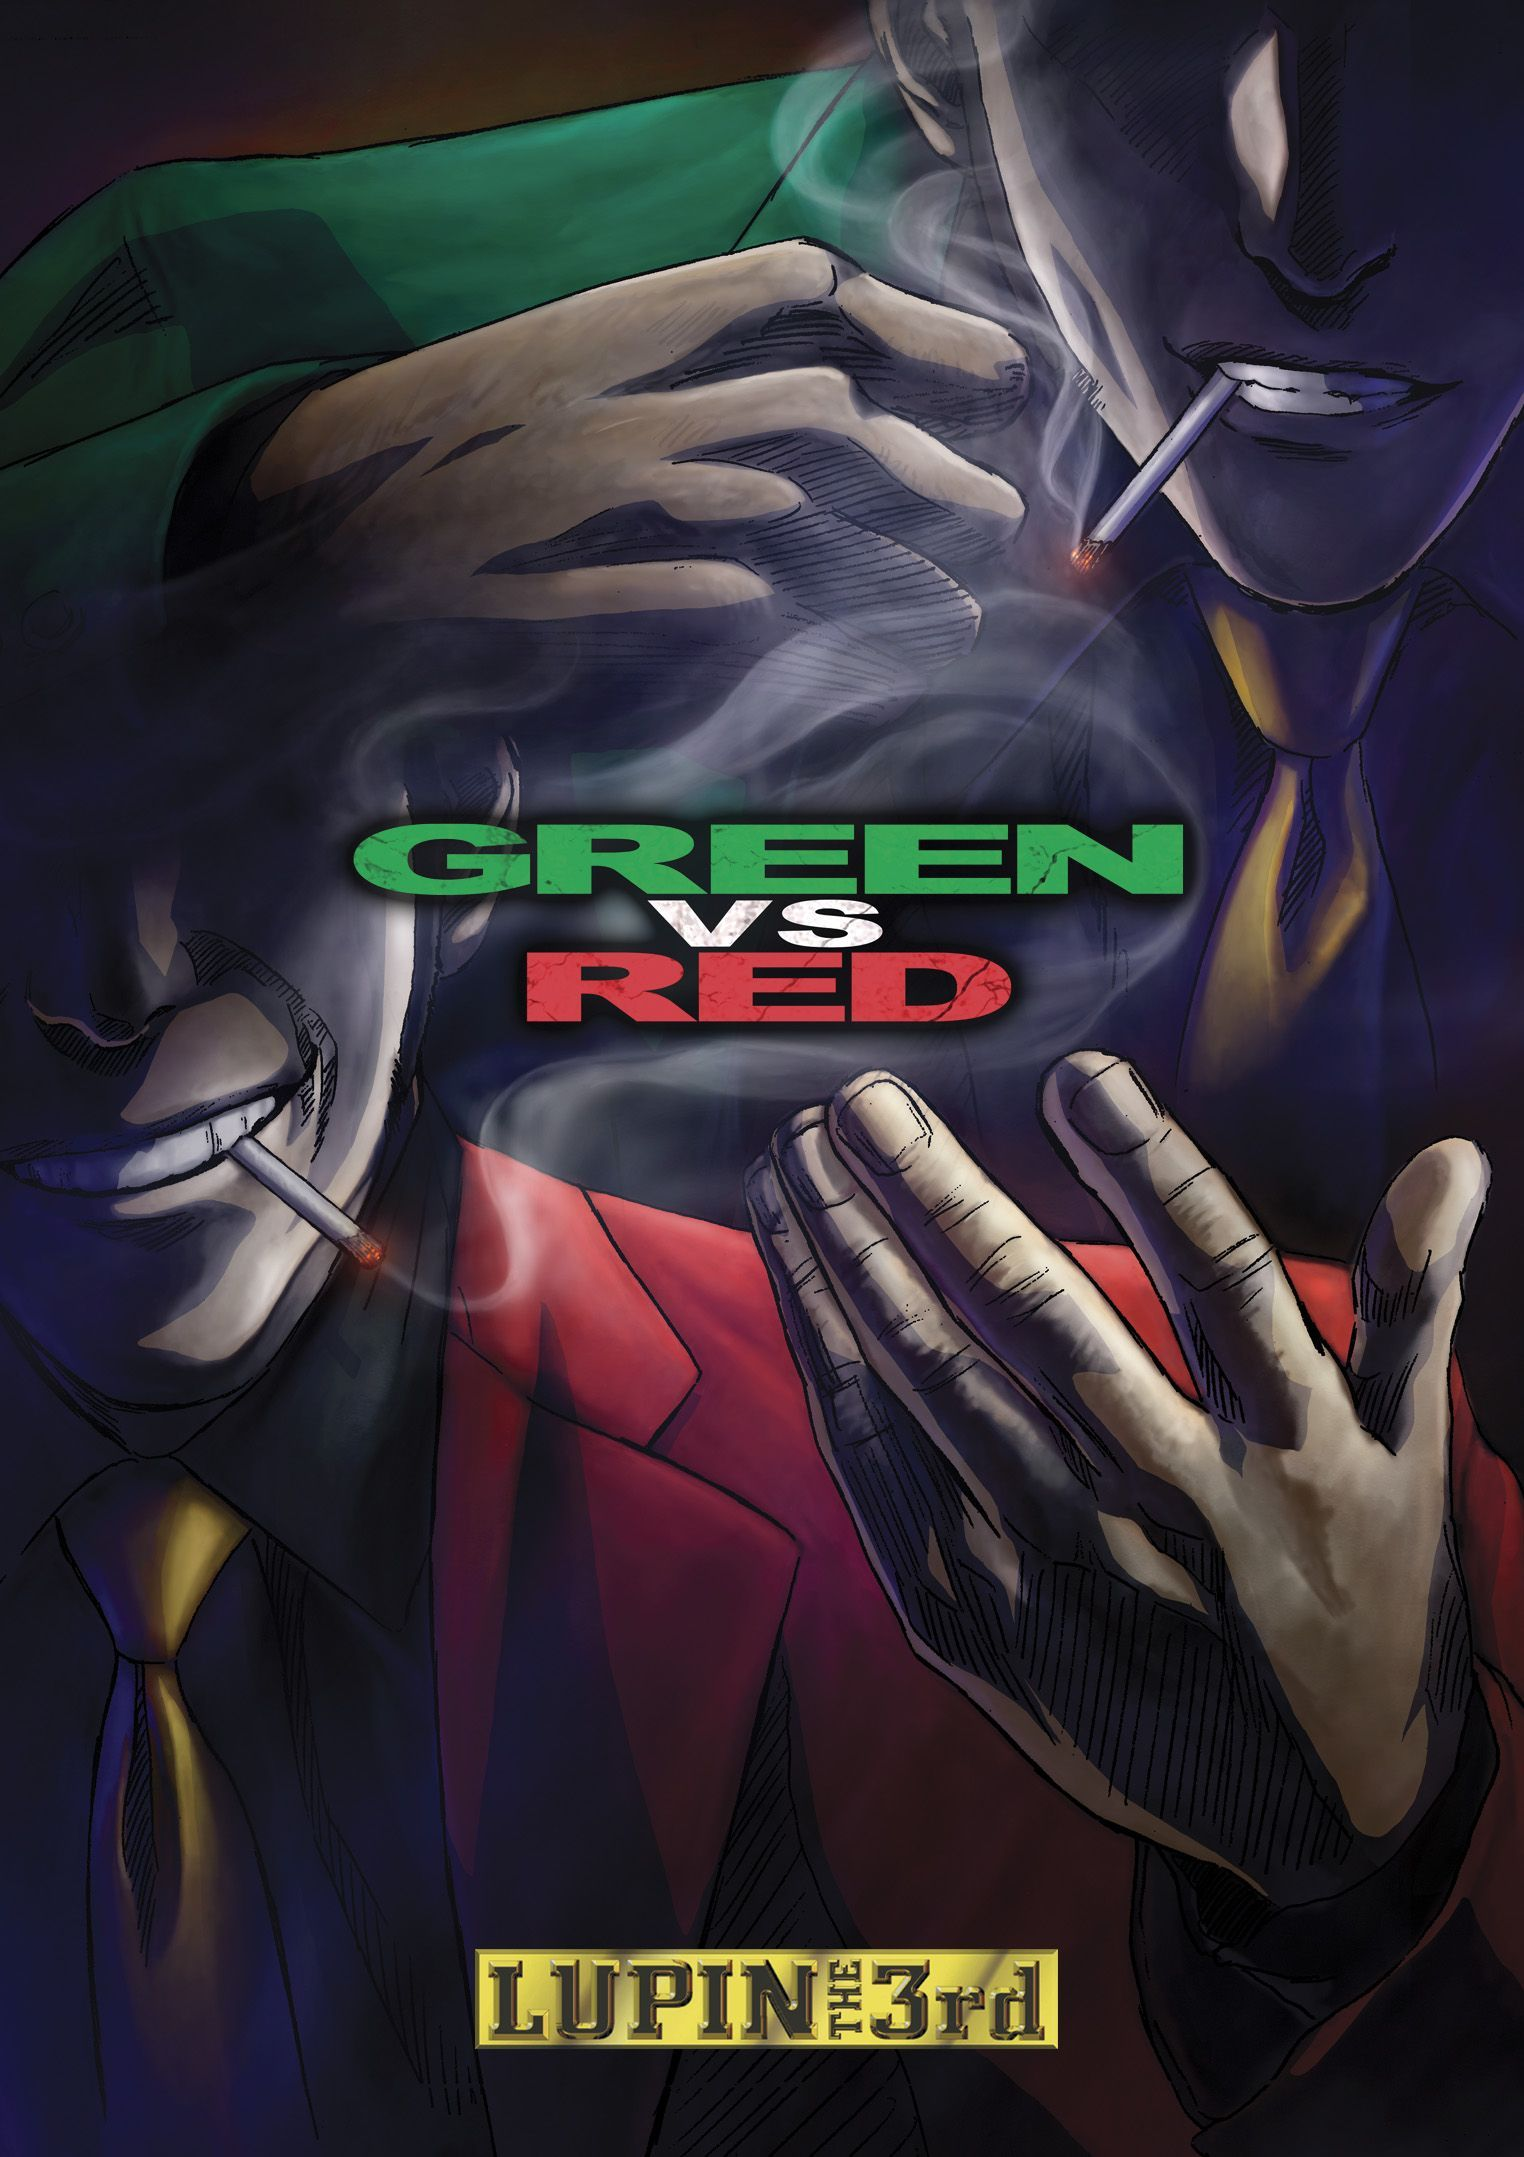 Lupin The 3rd Vs. Red (With images) Dvd, Cool things to